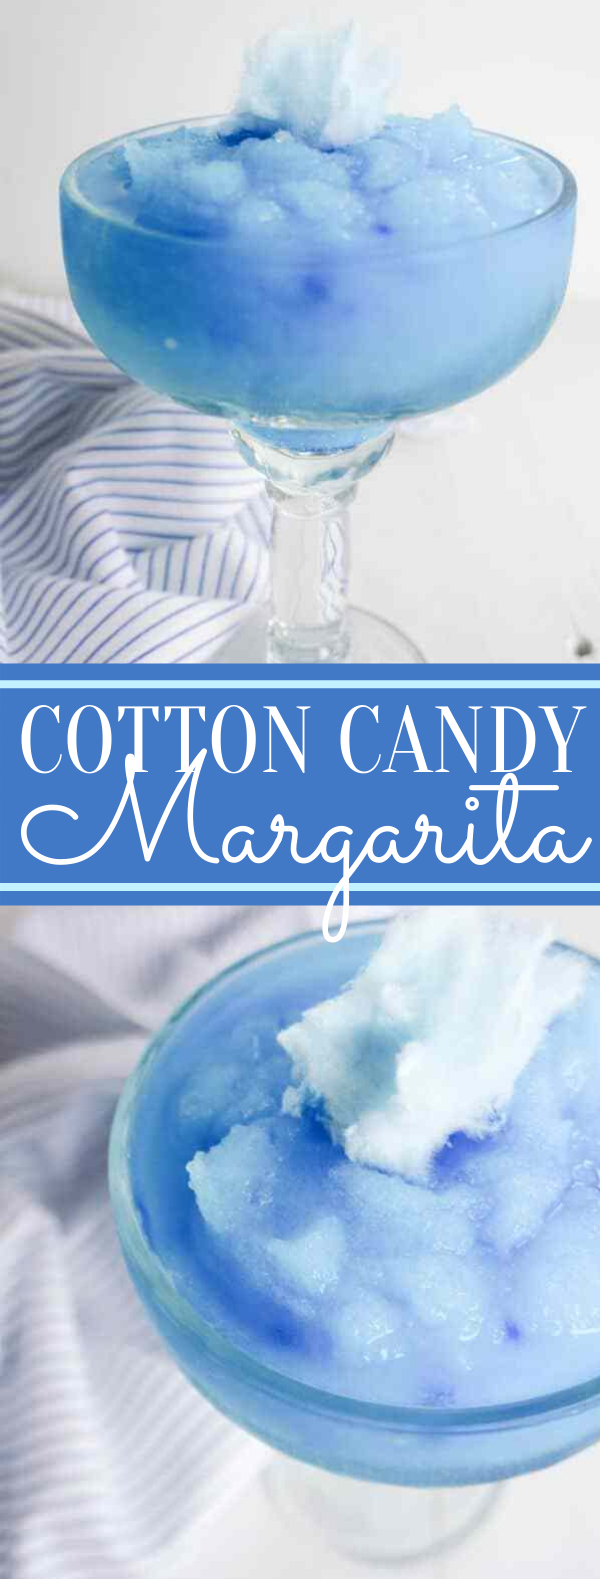 Cotton Candy Margarita #drinks #cocktails